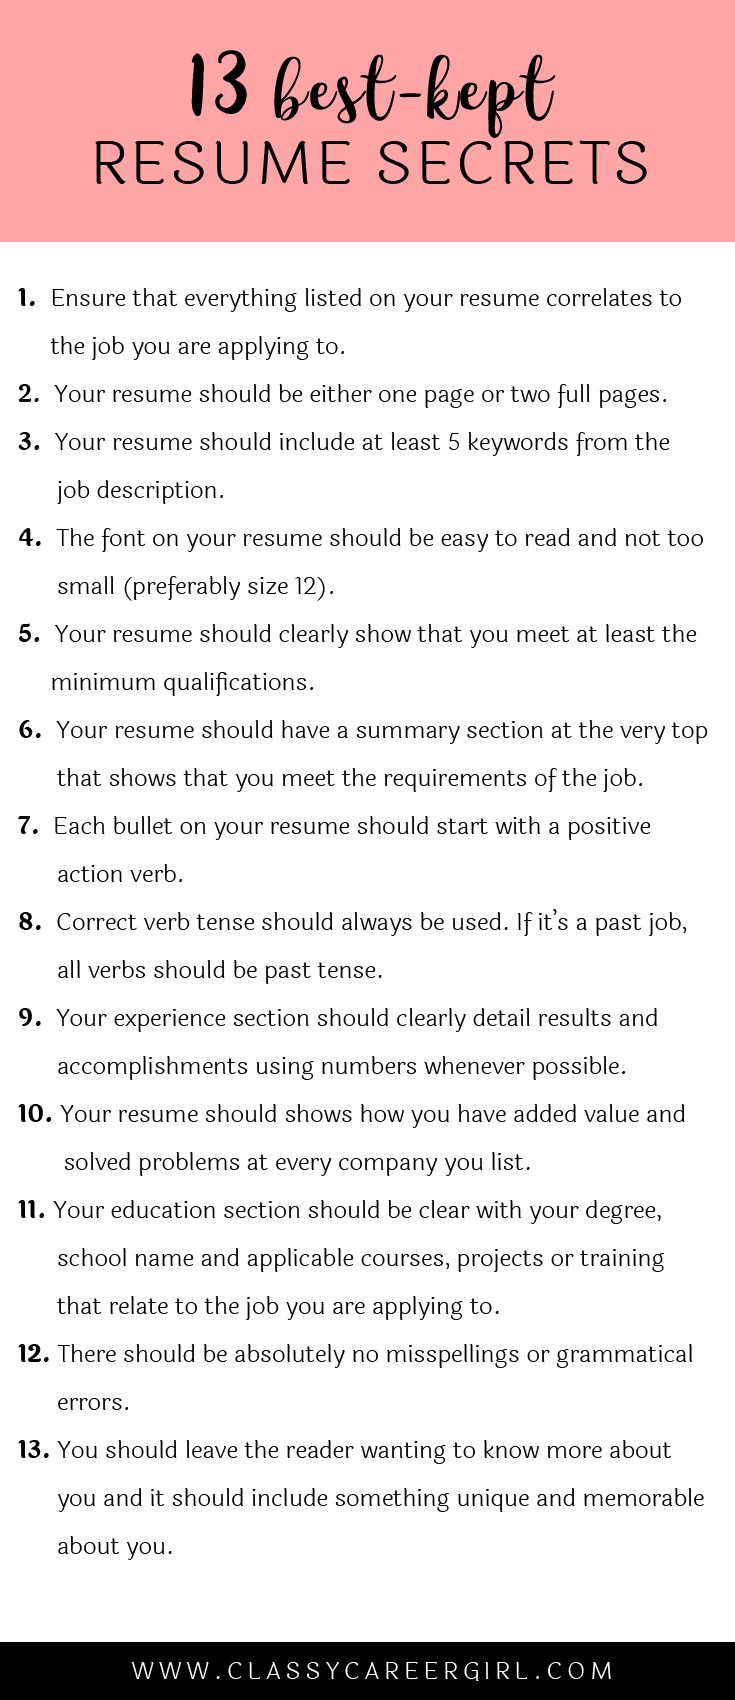 Opposenewapstandardsus  Inspiring  Ideas About Resume On Pinterest  Cv Format Resume Cv And  With Outstanding Some Hiring Managers Will Toss Your Resume Out If You Dont Know These  With Astounding Resume Objective For Teacher Also Objective On A Resume Example In Addition Free Samples Of Resumes And Sample Nursing Student Resume As Well As Front Desk Resume Sample Additionally Medical Assistant Resume Example From Pinterestcom With Opposenewapstandardsus  Outstanding  Ideas About Resume On Pinterest  Cv Format Resume Cv And  With Astounding Some Hiring Managers Will Toss Your Resume Out If You Dont Know These  And Inspiring Resume Objective For Teacher Also Objective On A Resume Example In Addition Free Samples Of Resumes From Pinterestcom